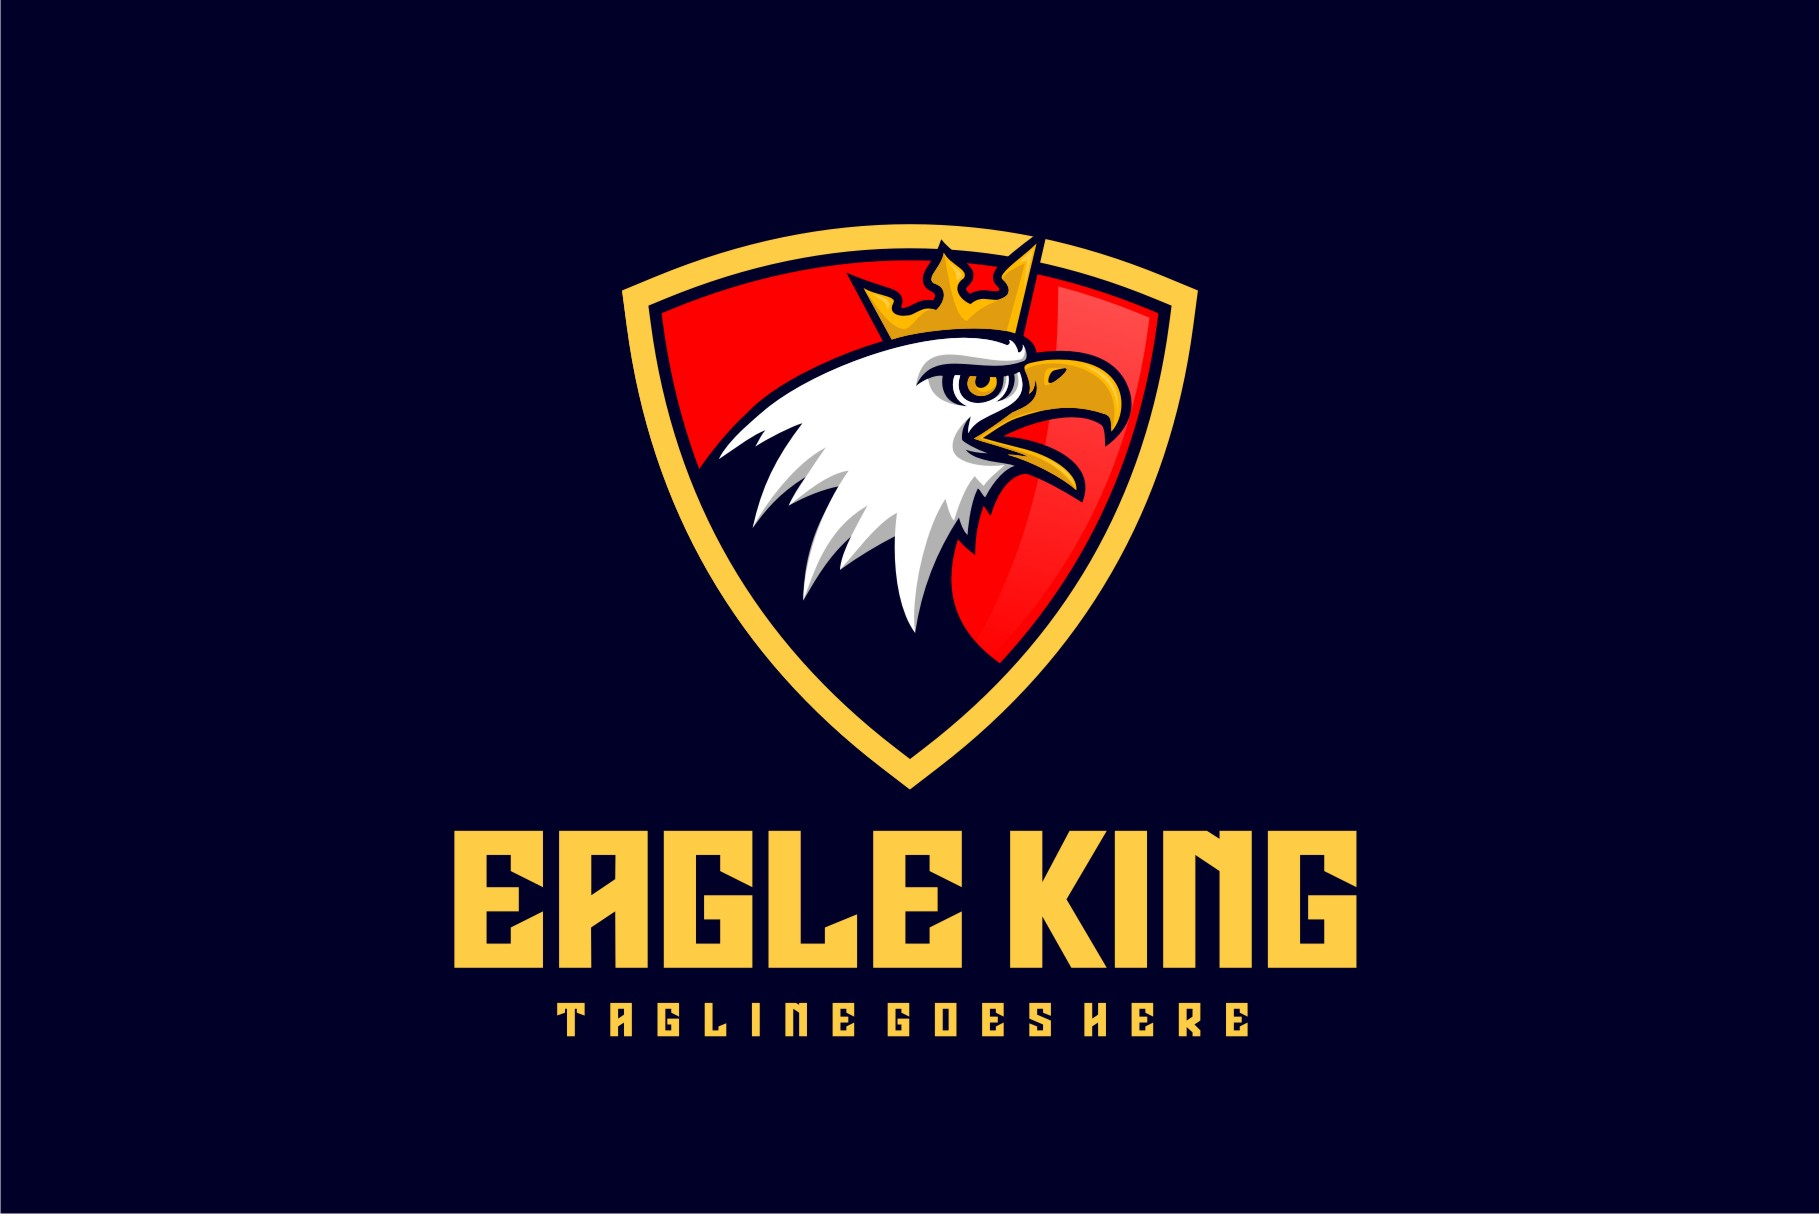 Download Free Eagle King Graphic By Herulogo Creative Fabrica for Cricut Explore, Silhouette and other cutting machines.